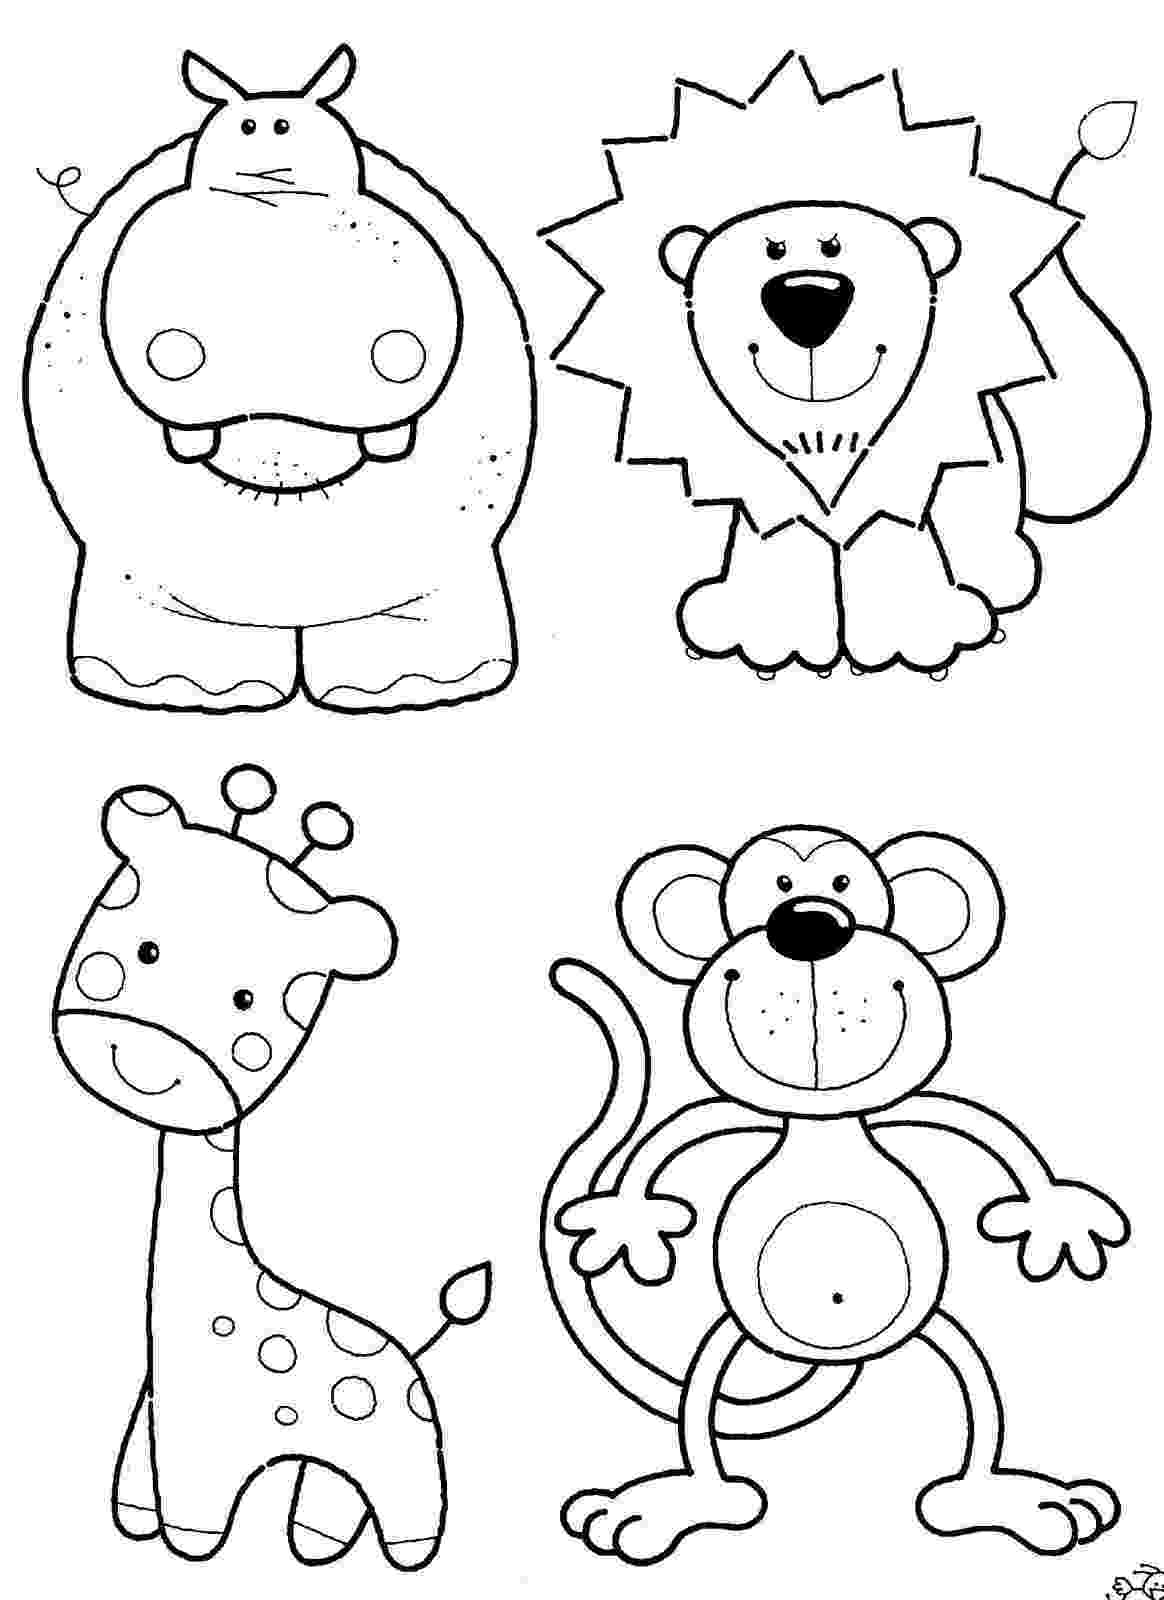 free animal coloring pages adult coloring pages animals best coloring pages for kids pages animal coloring free